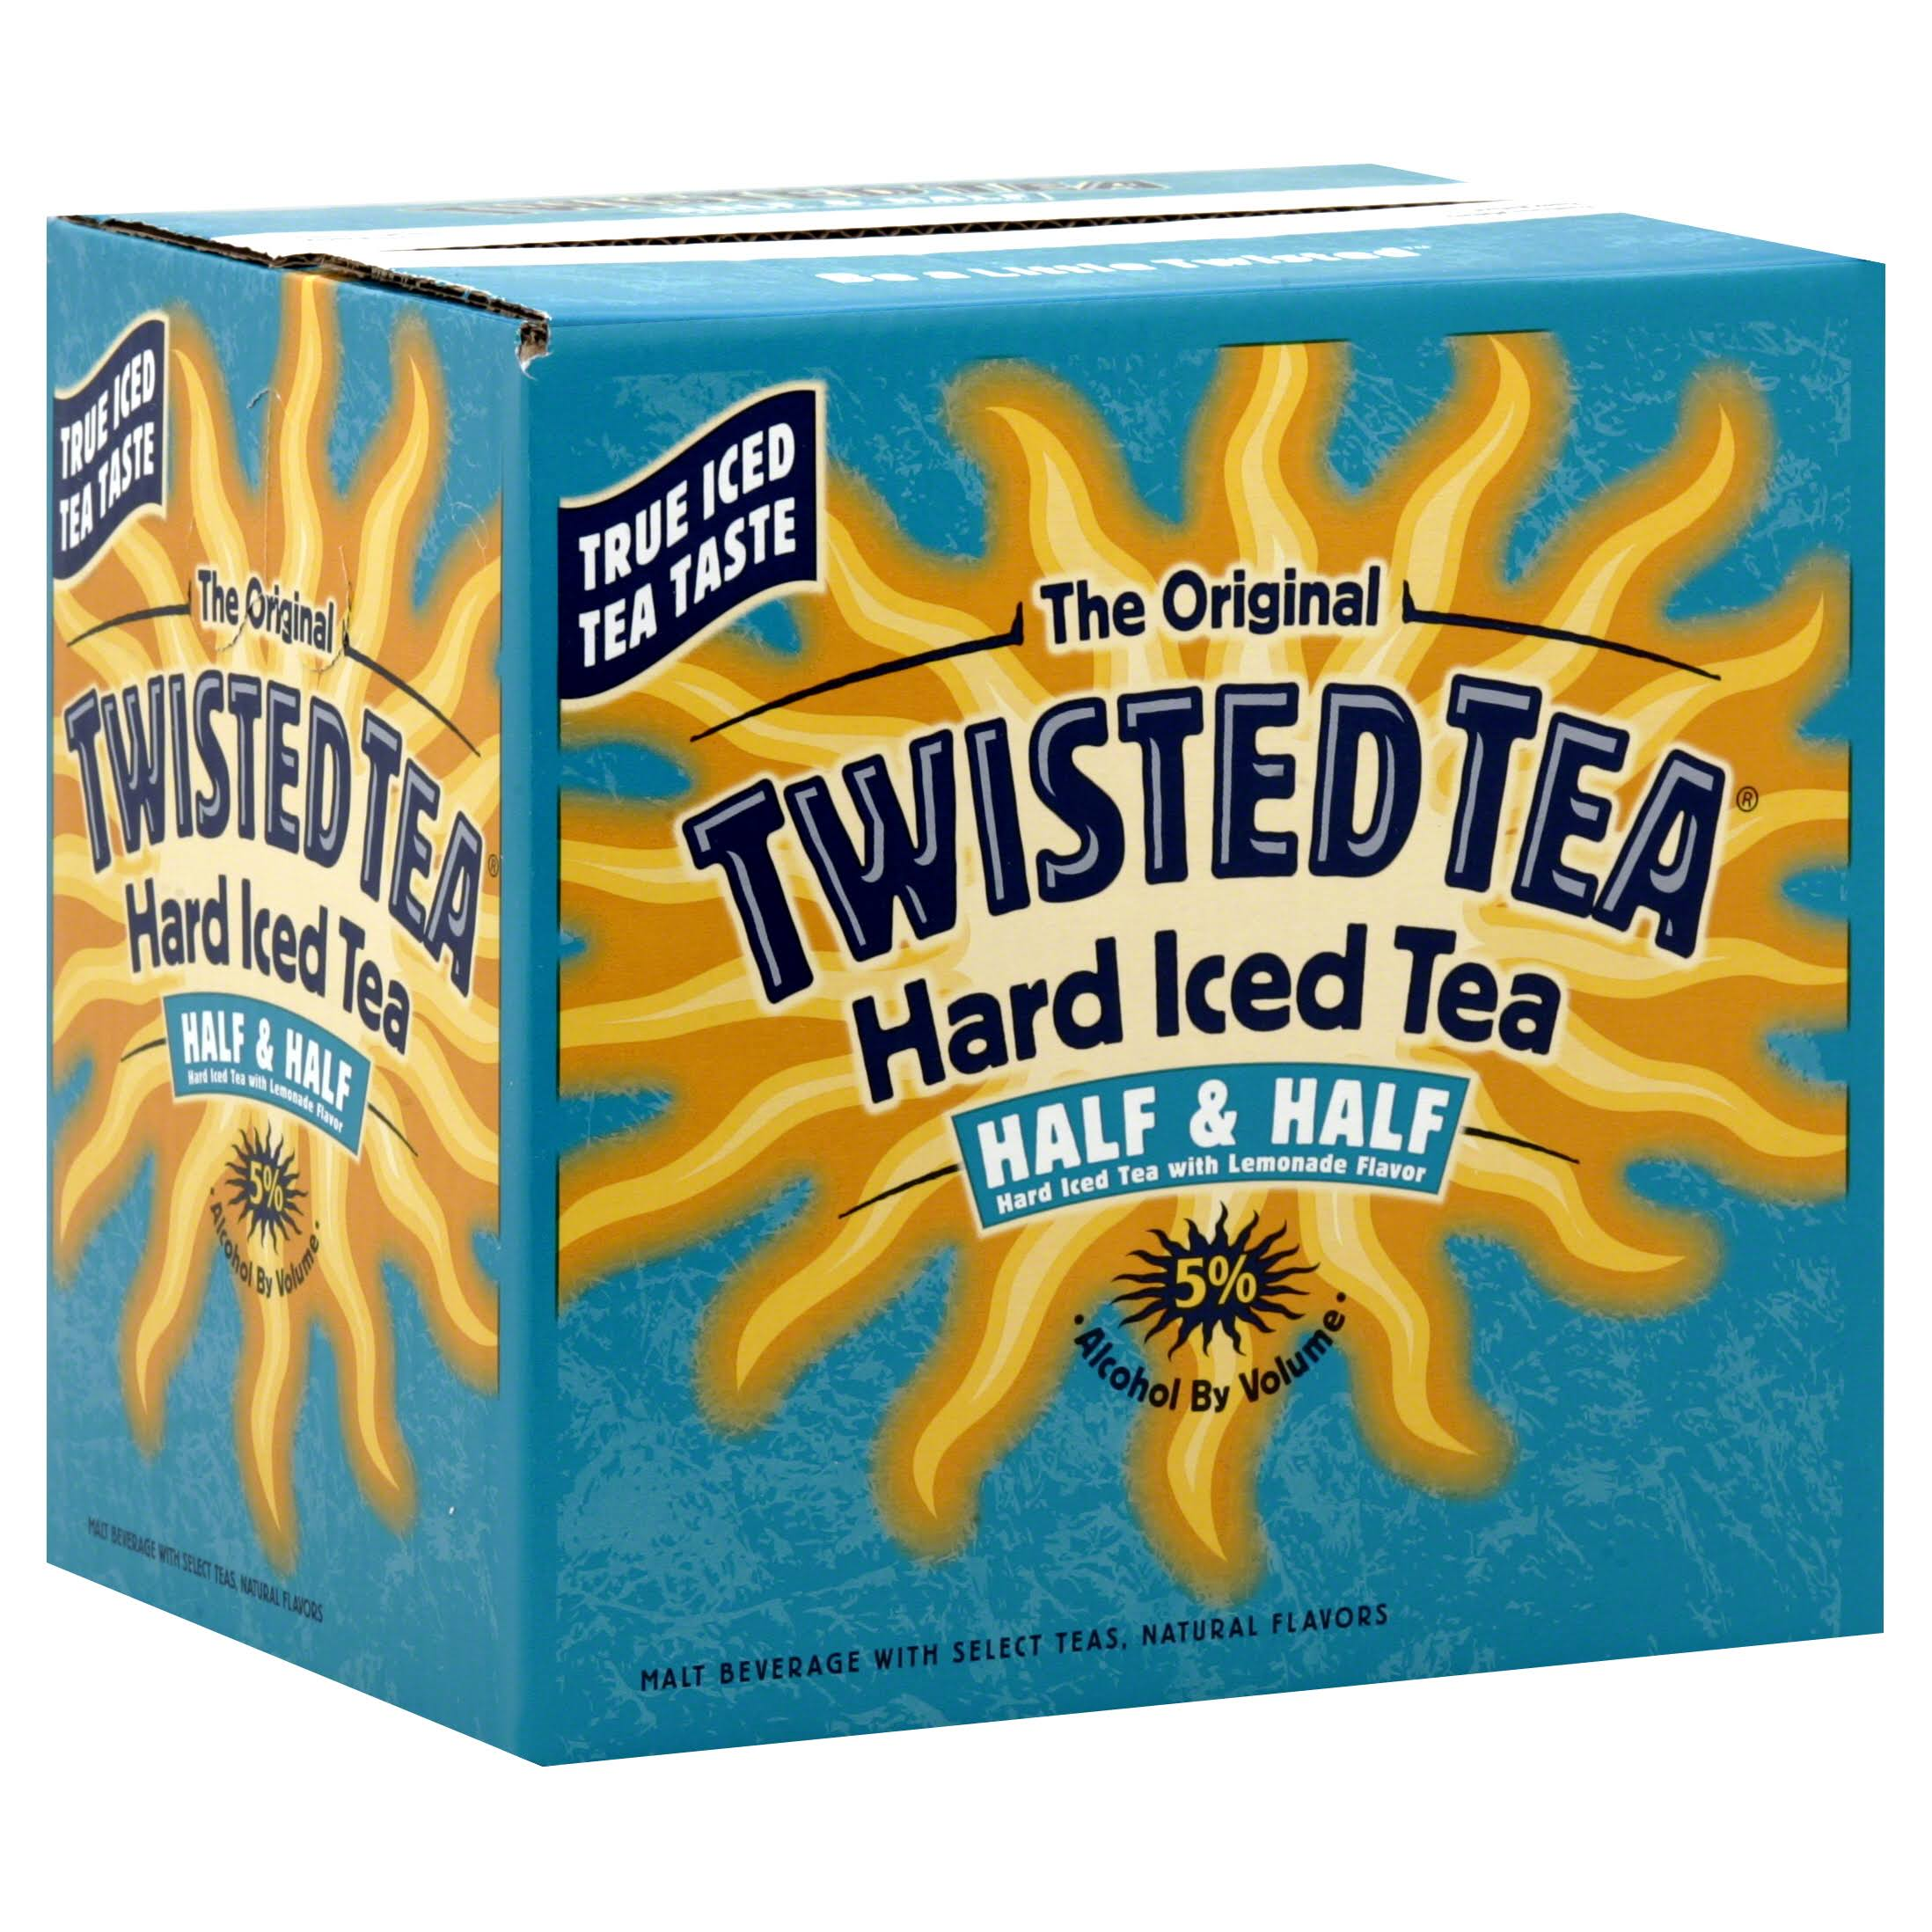 Twisted Tea Hard Iced Tea Half & Half